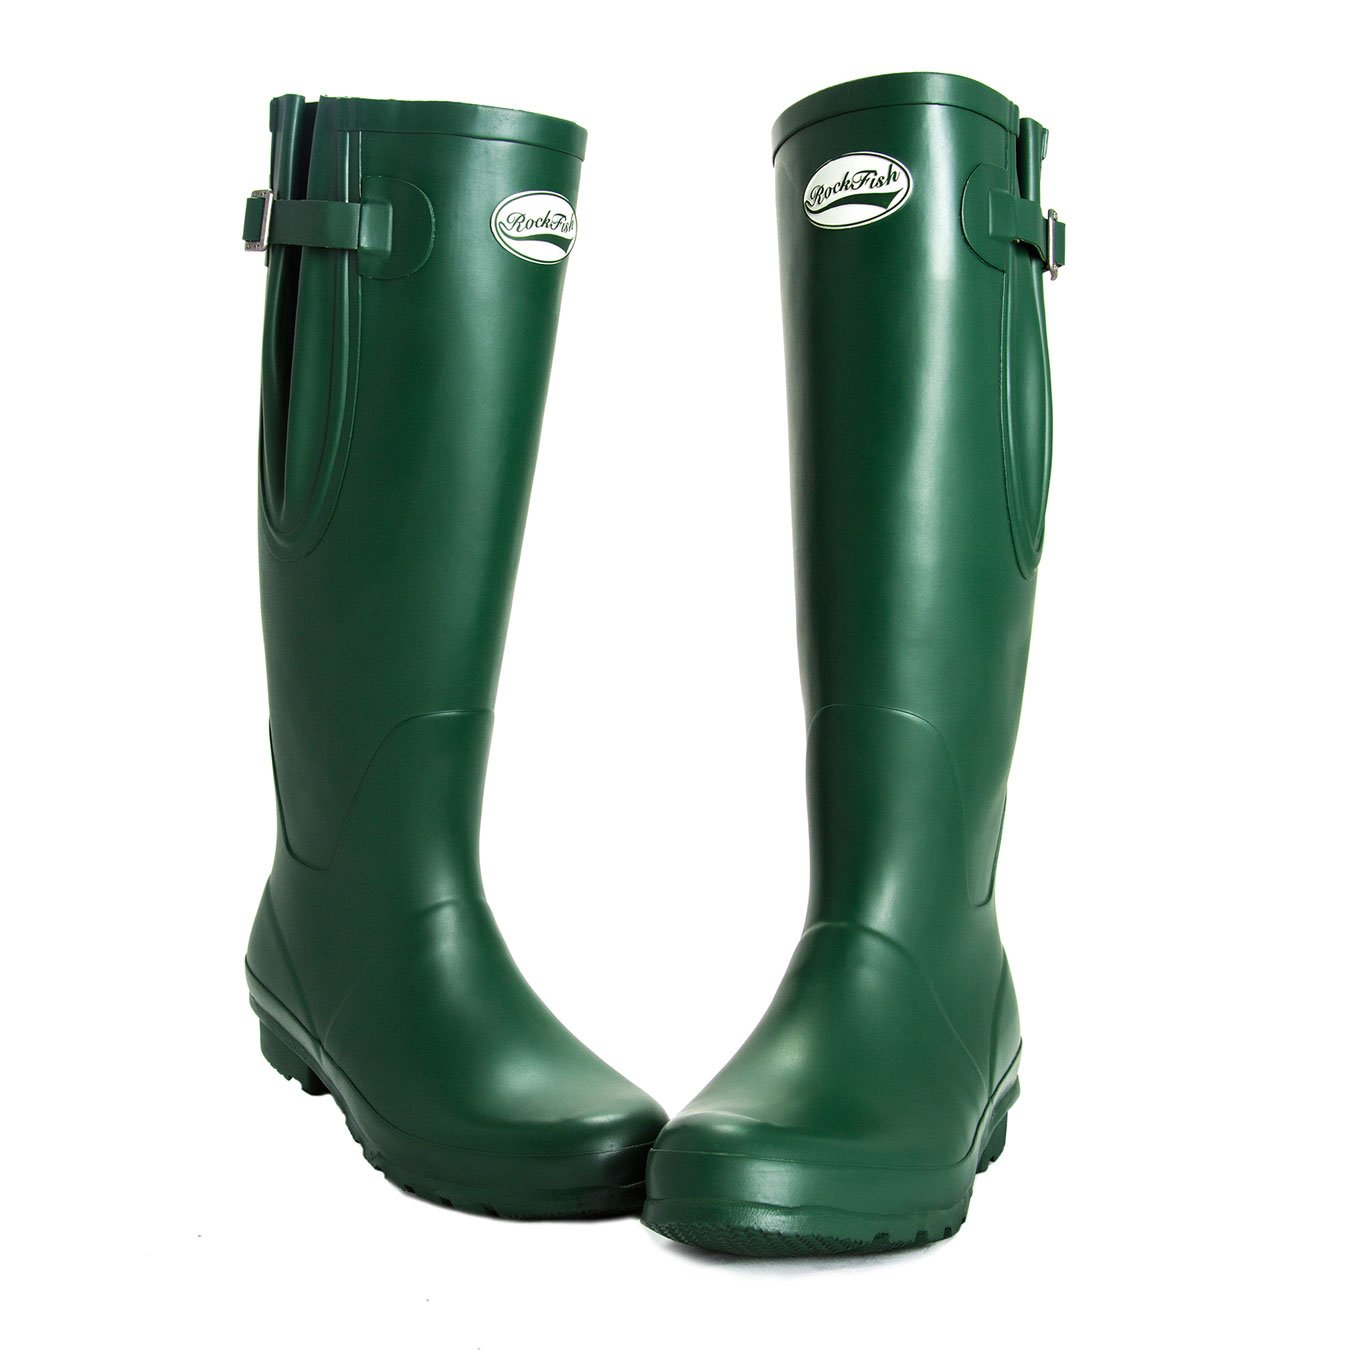 Racing vert Rockfish Award Winning bottes, Knee-High, Ladies Wellington bottes, bottes, Natural Rubber, calenderouge, Cushioned Insole, Taille 3  nouveau sadie